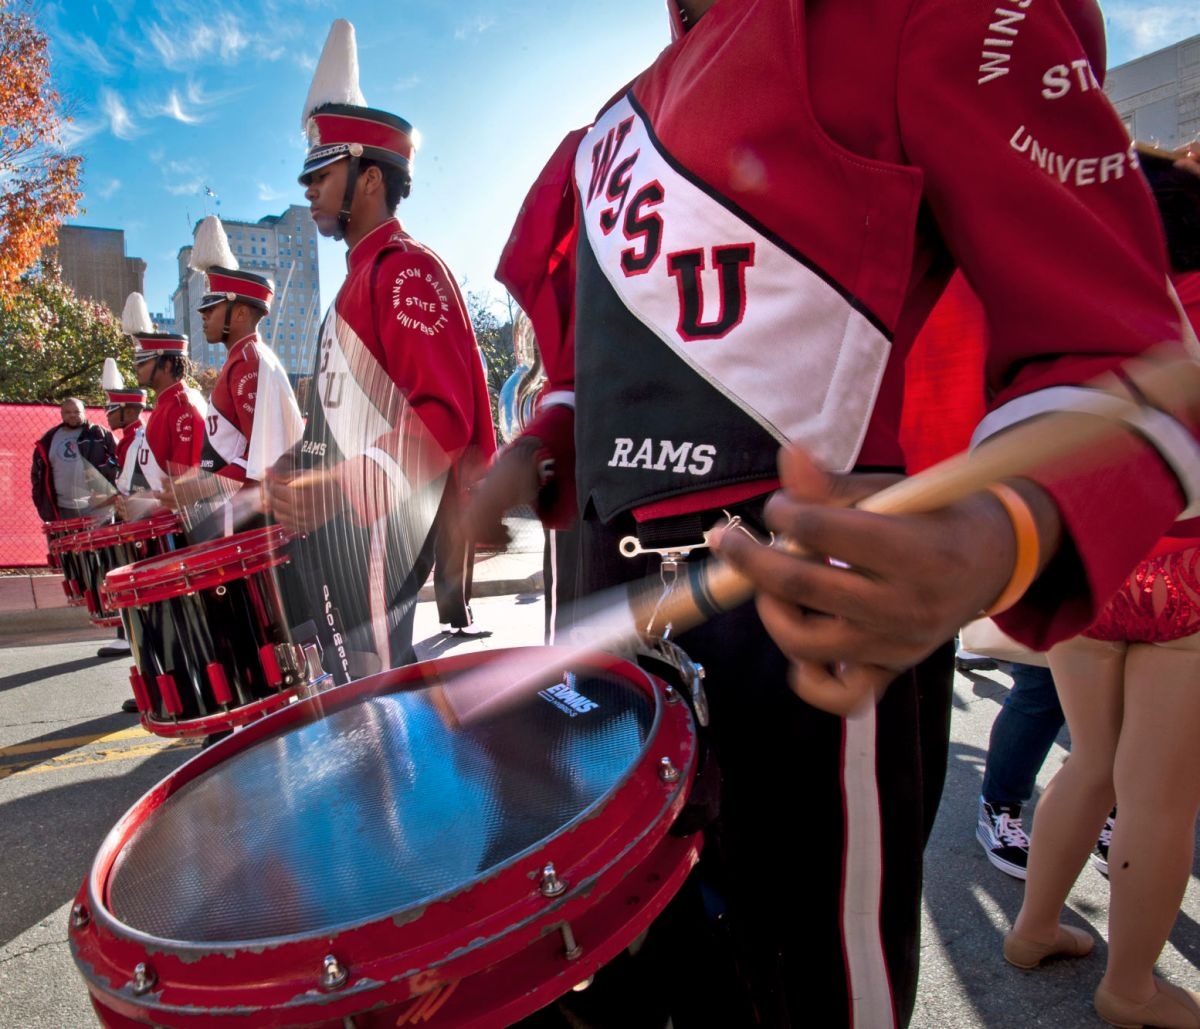 WSSU cancels its September homecoming events   Local News   journalnow.com